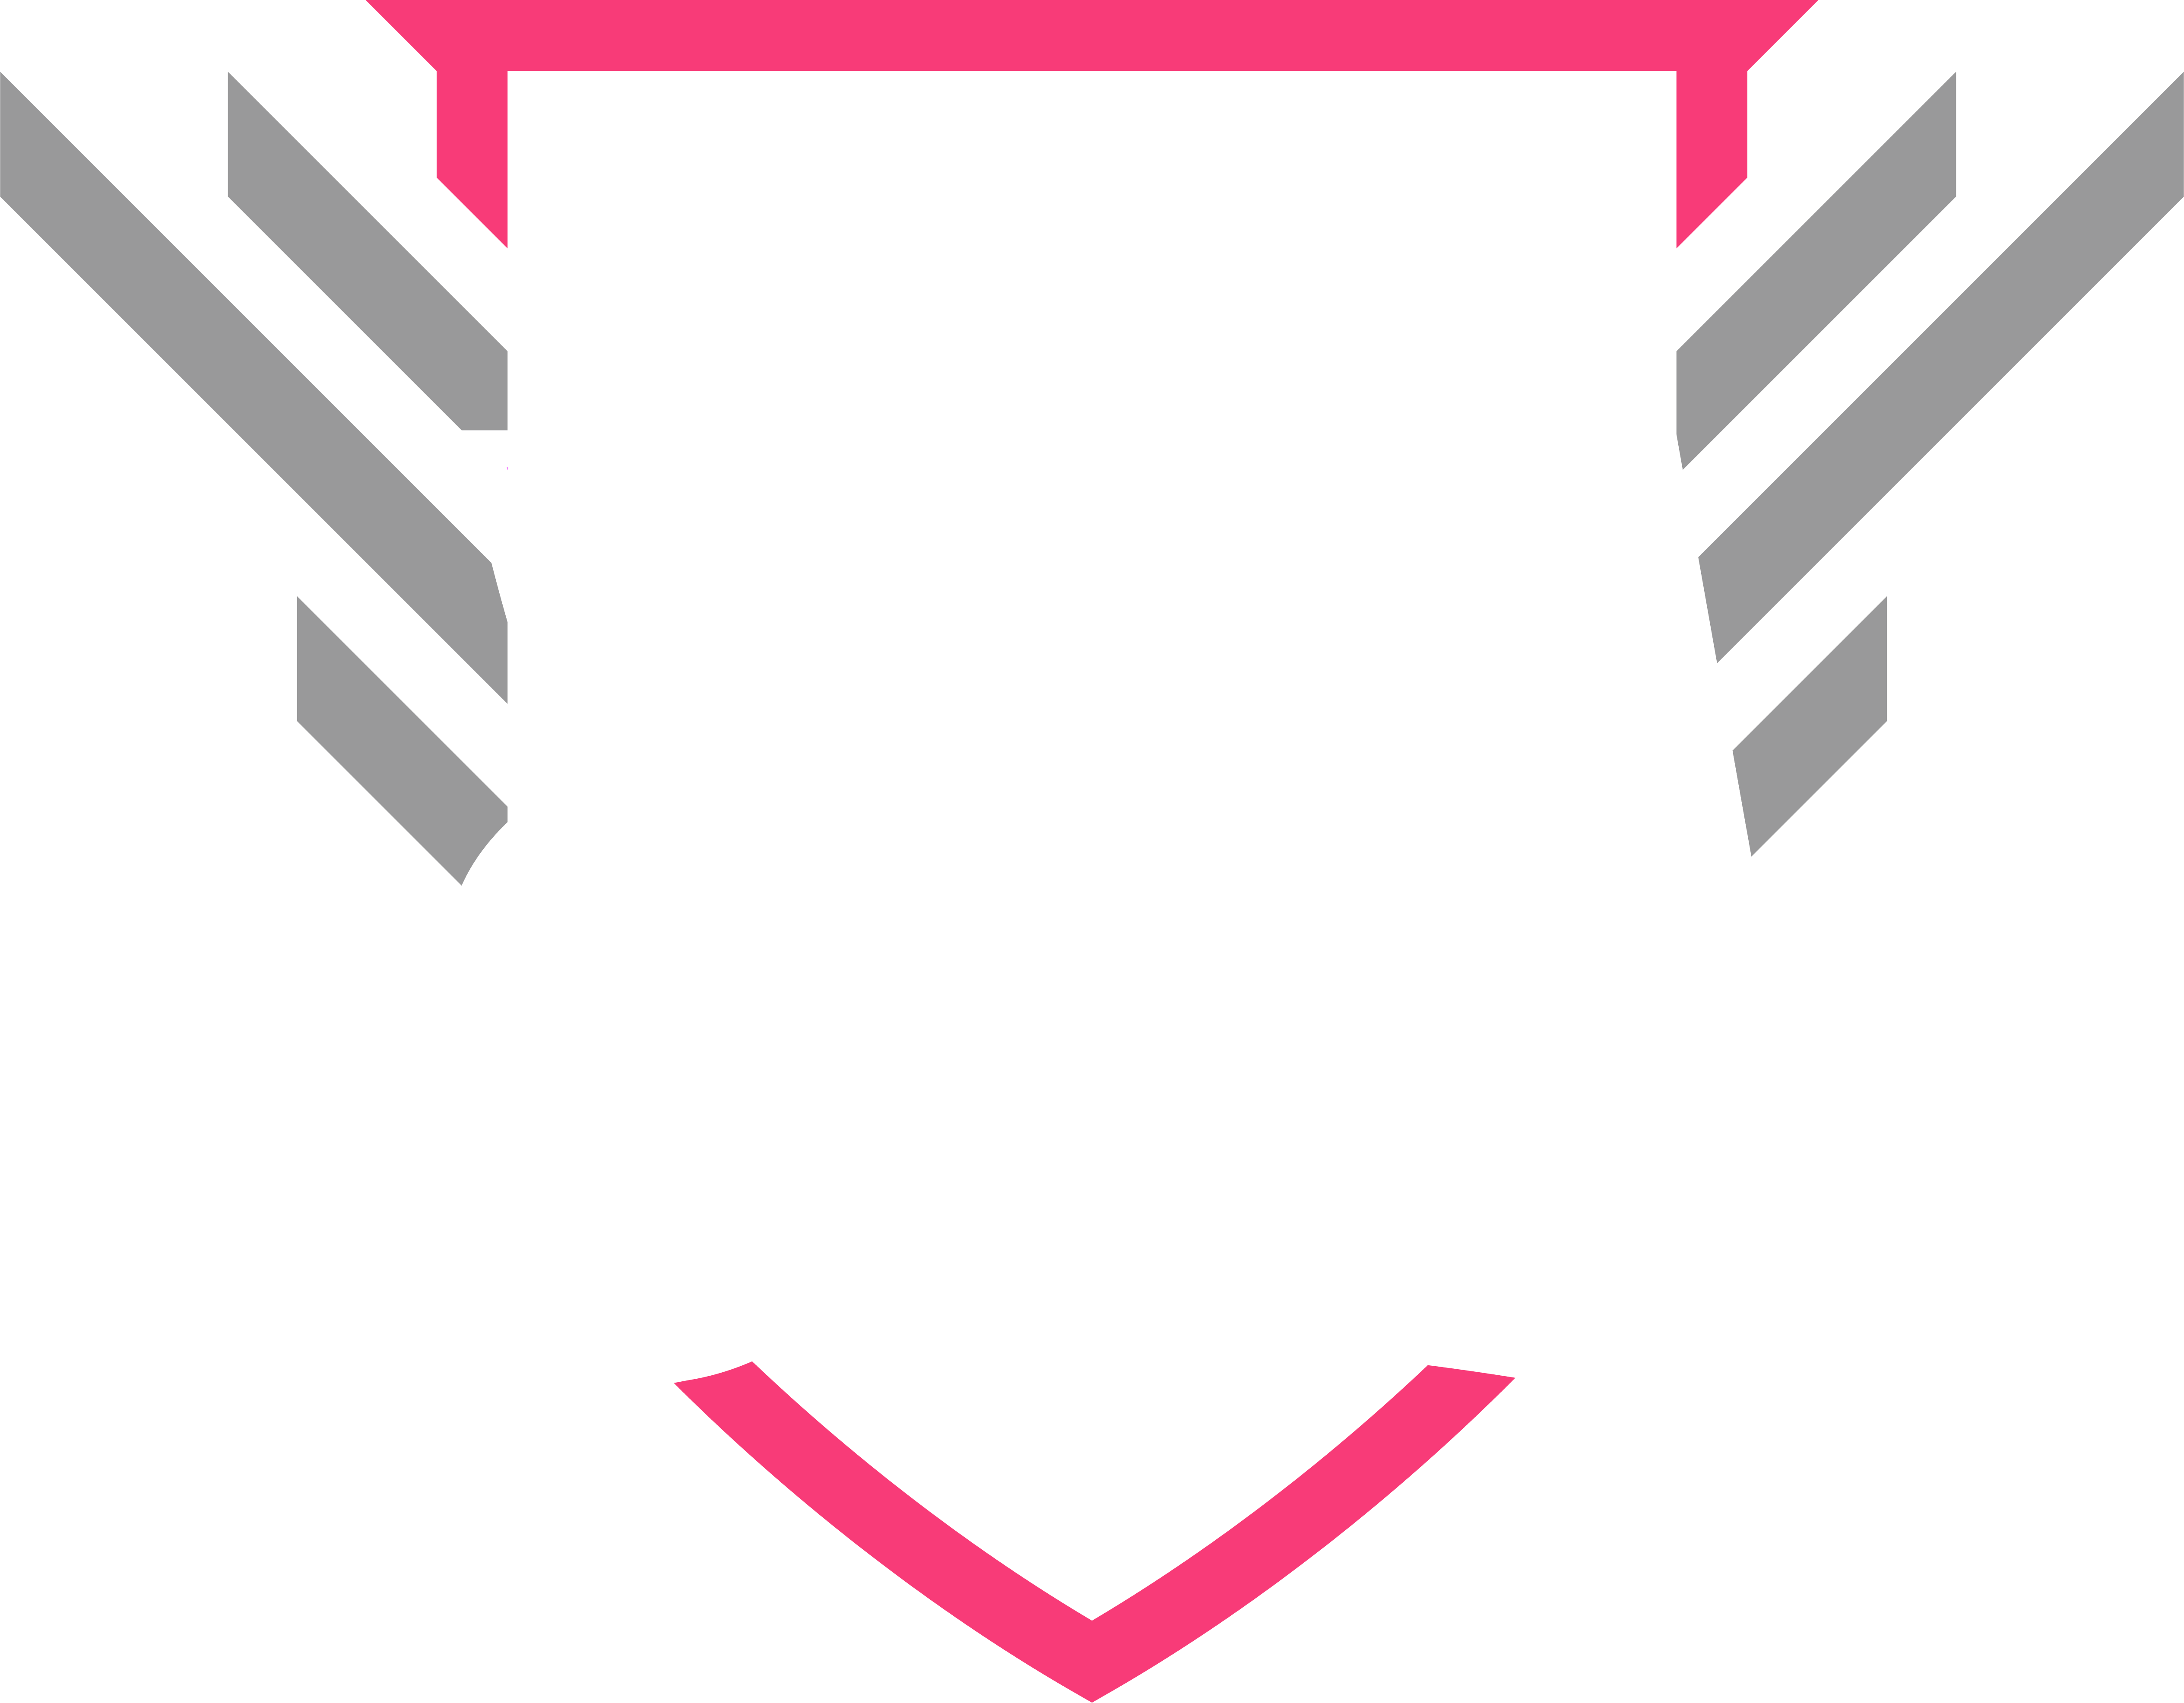 Youth Cup Fifa19.png